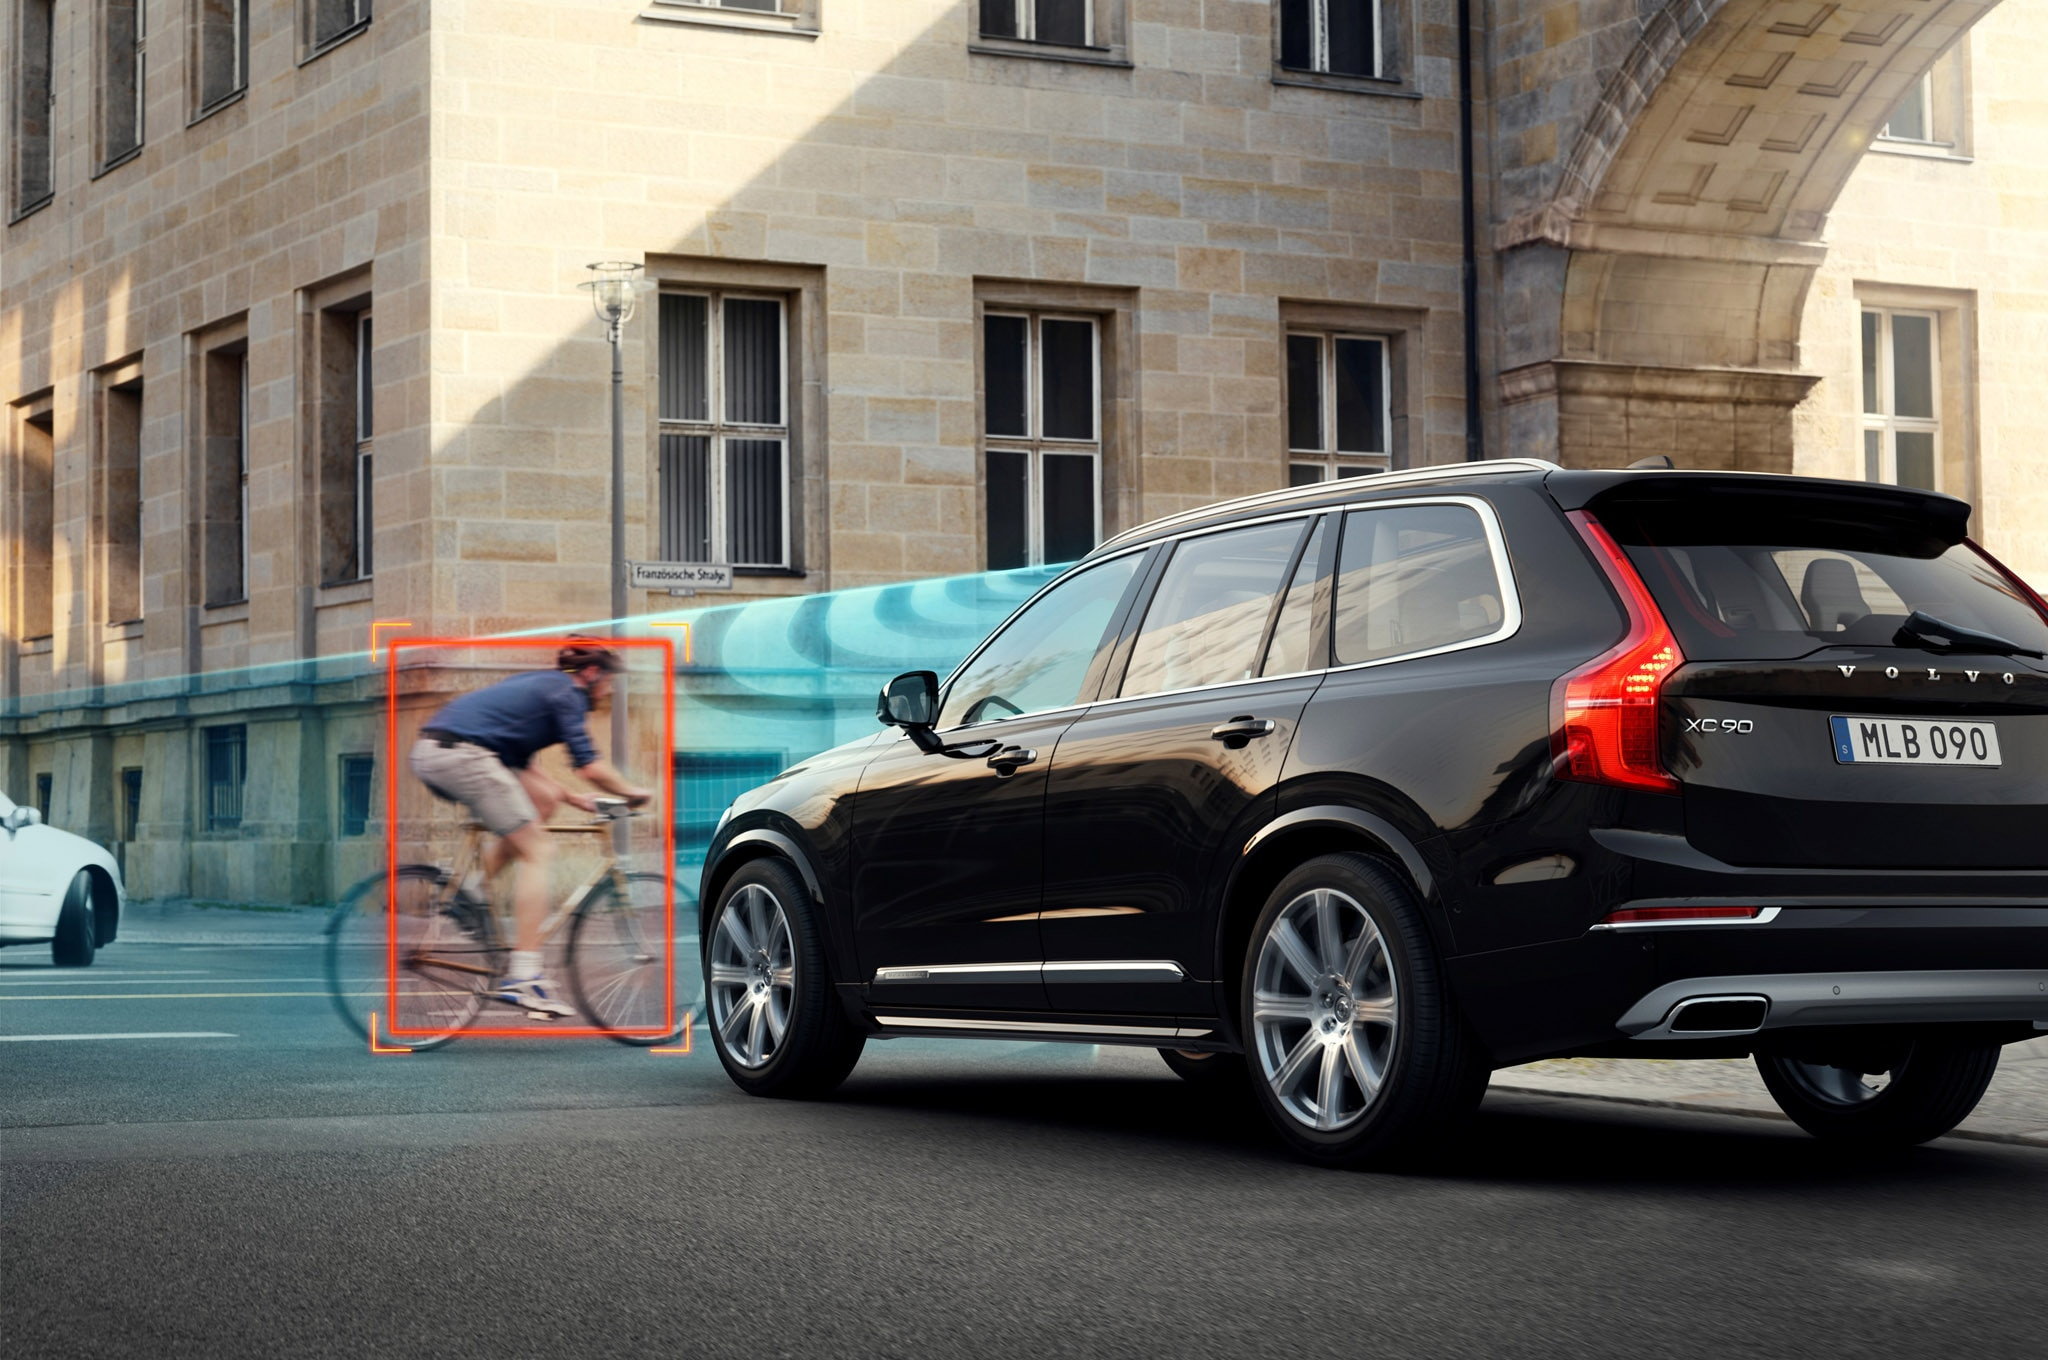 Volvo Xc90 Commercial >> Volvo Demonstrates Active Safety Technologies in Sweden